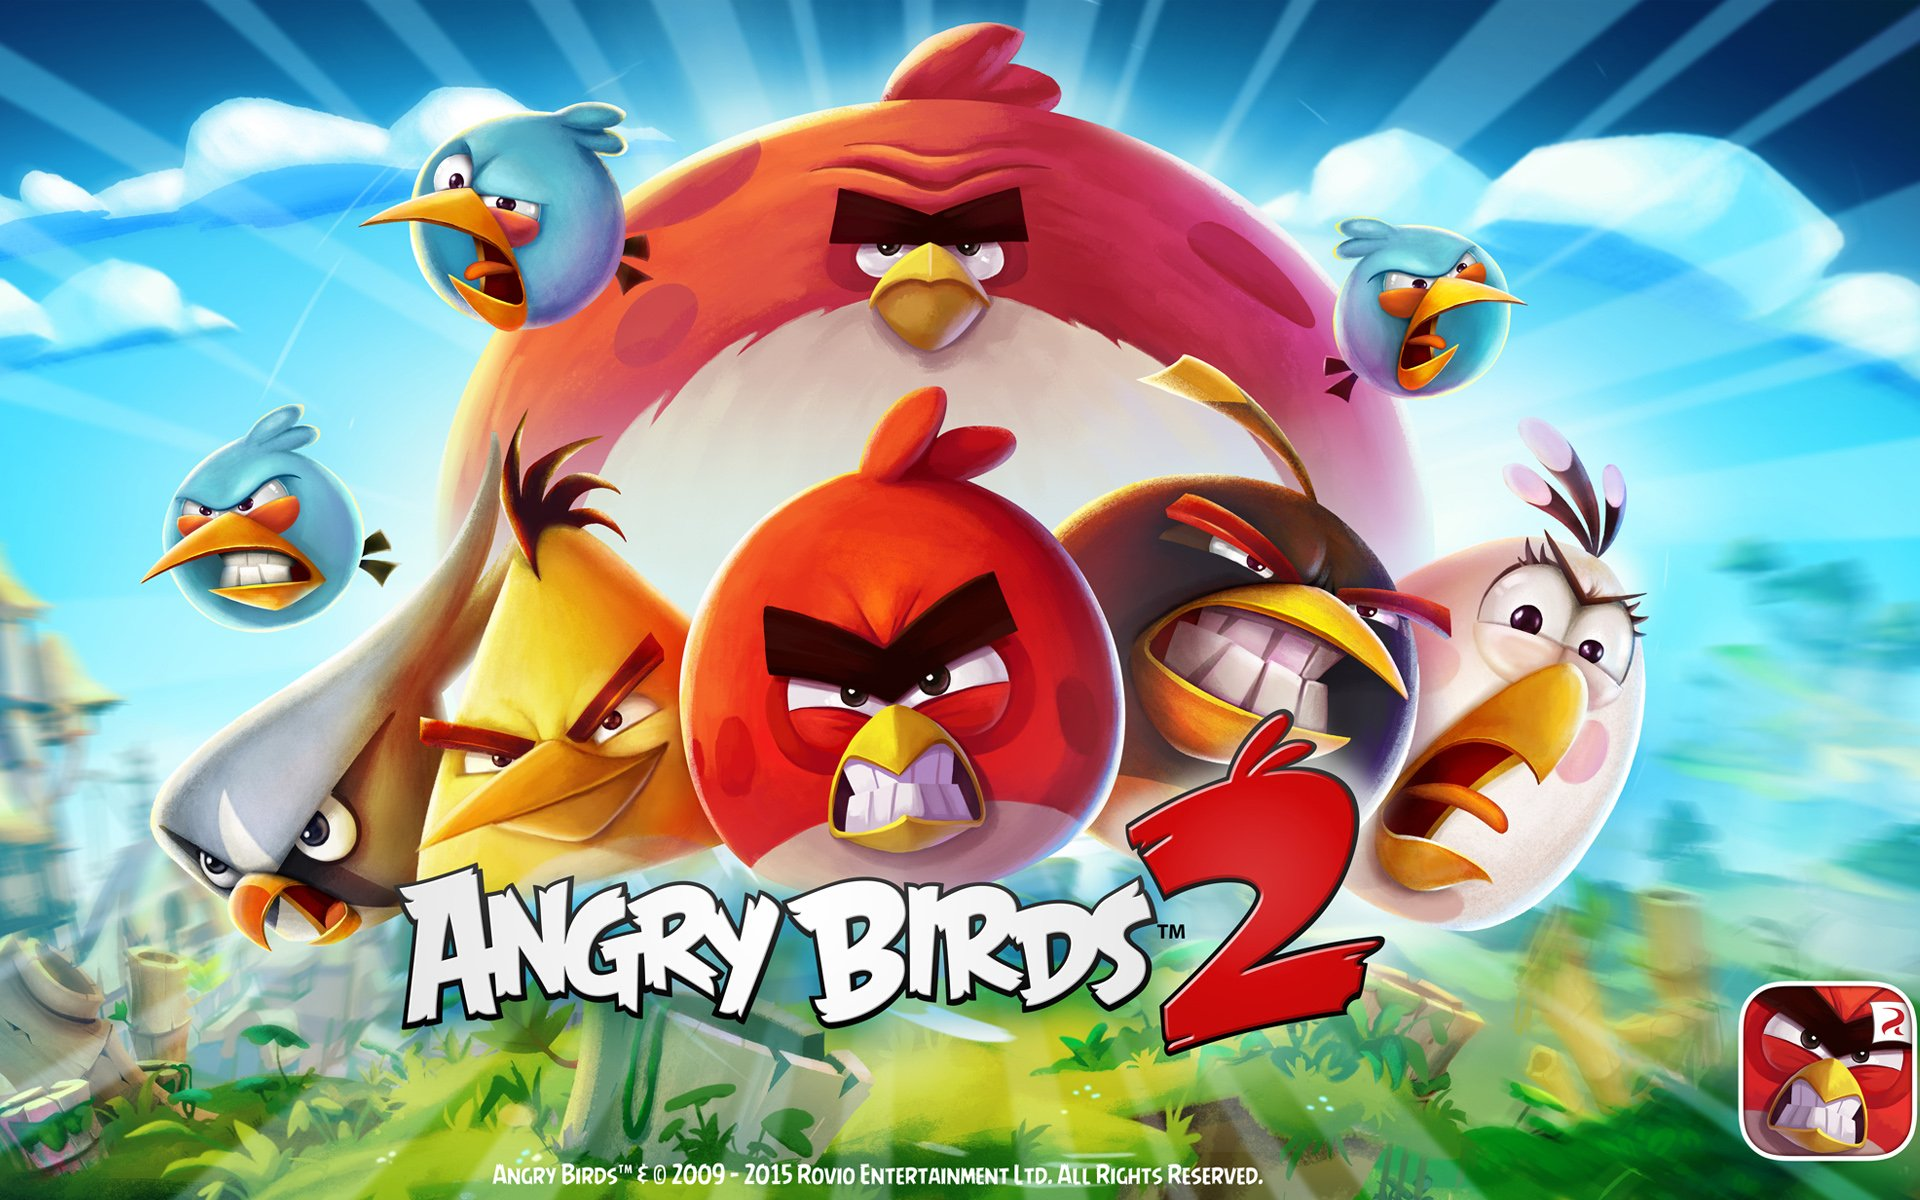 2 angry birds 2 hd wallpapers | background images - wallpaper abyss